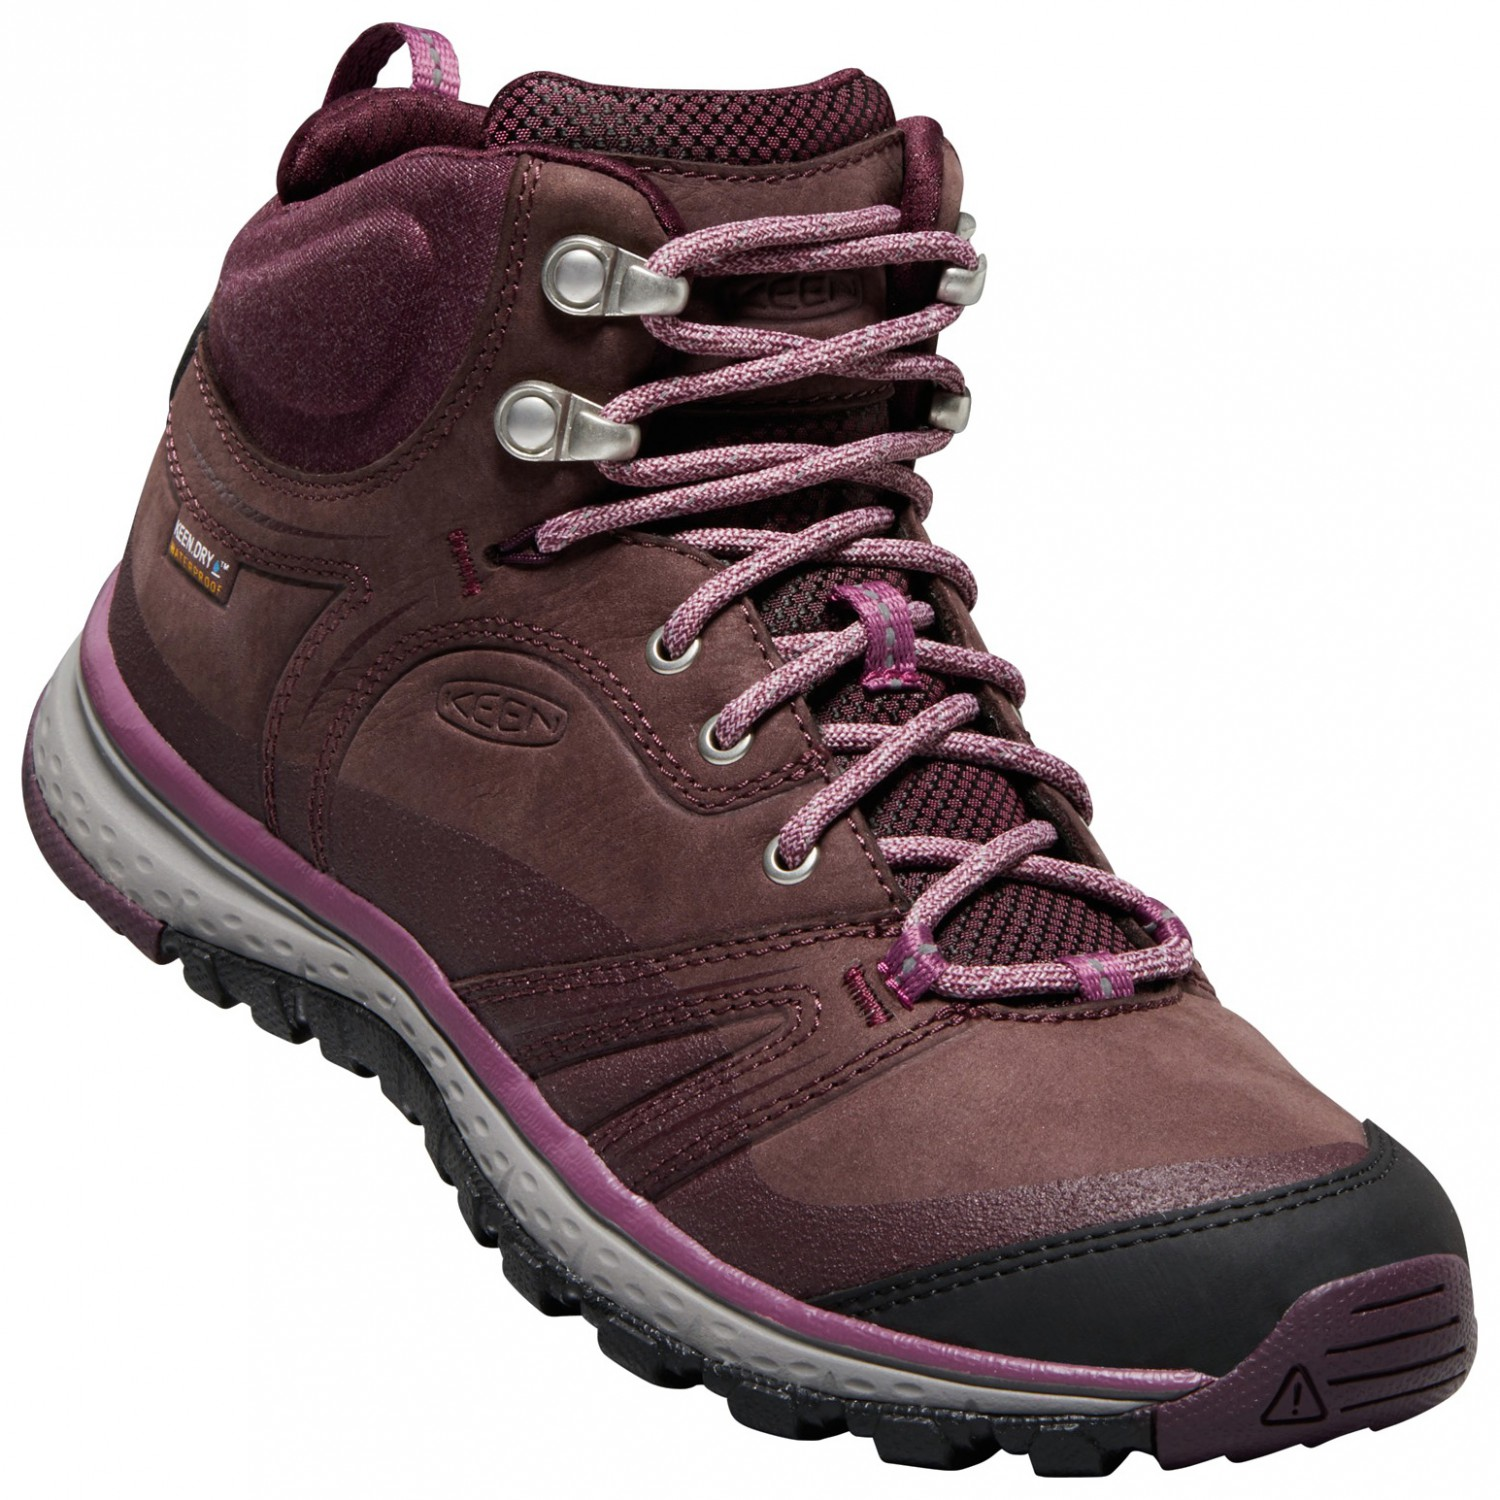 Keen Shoes Stock